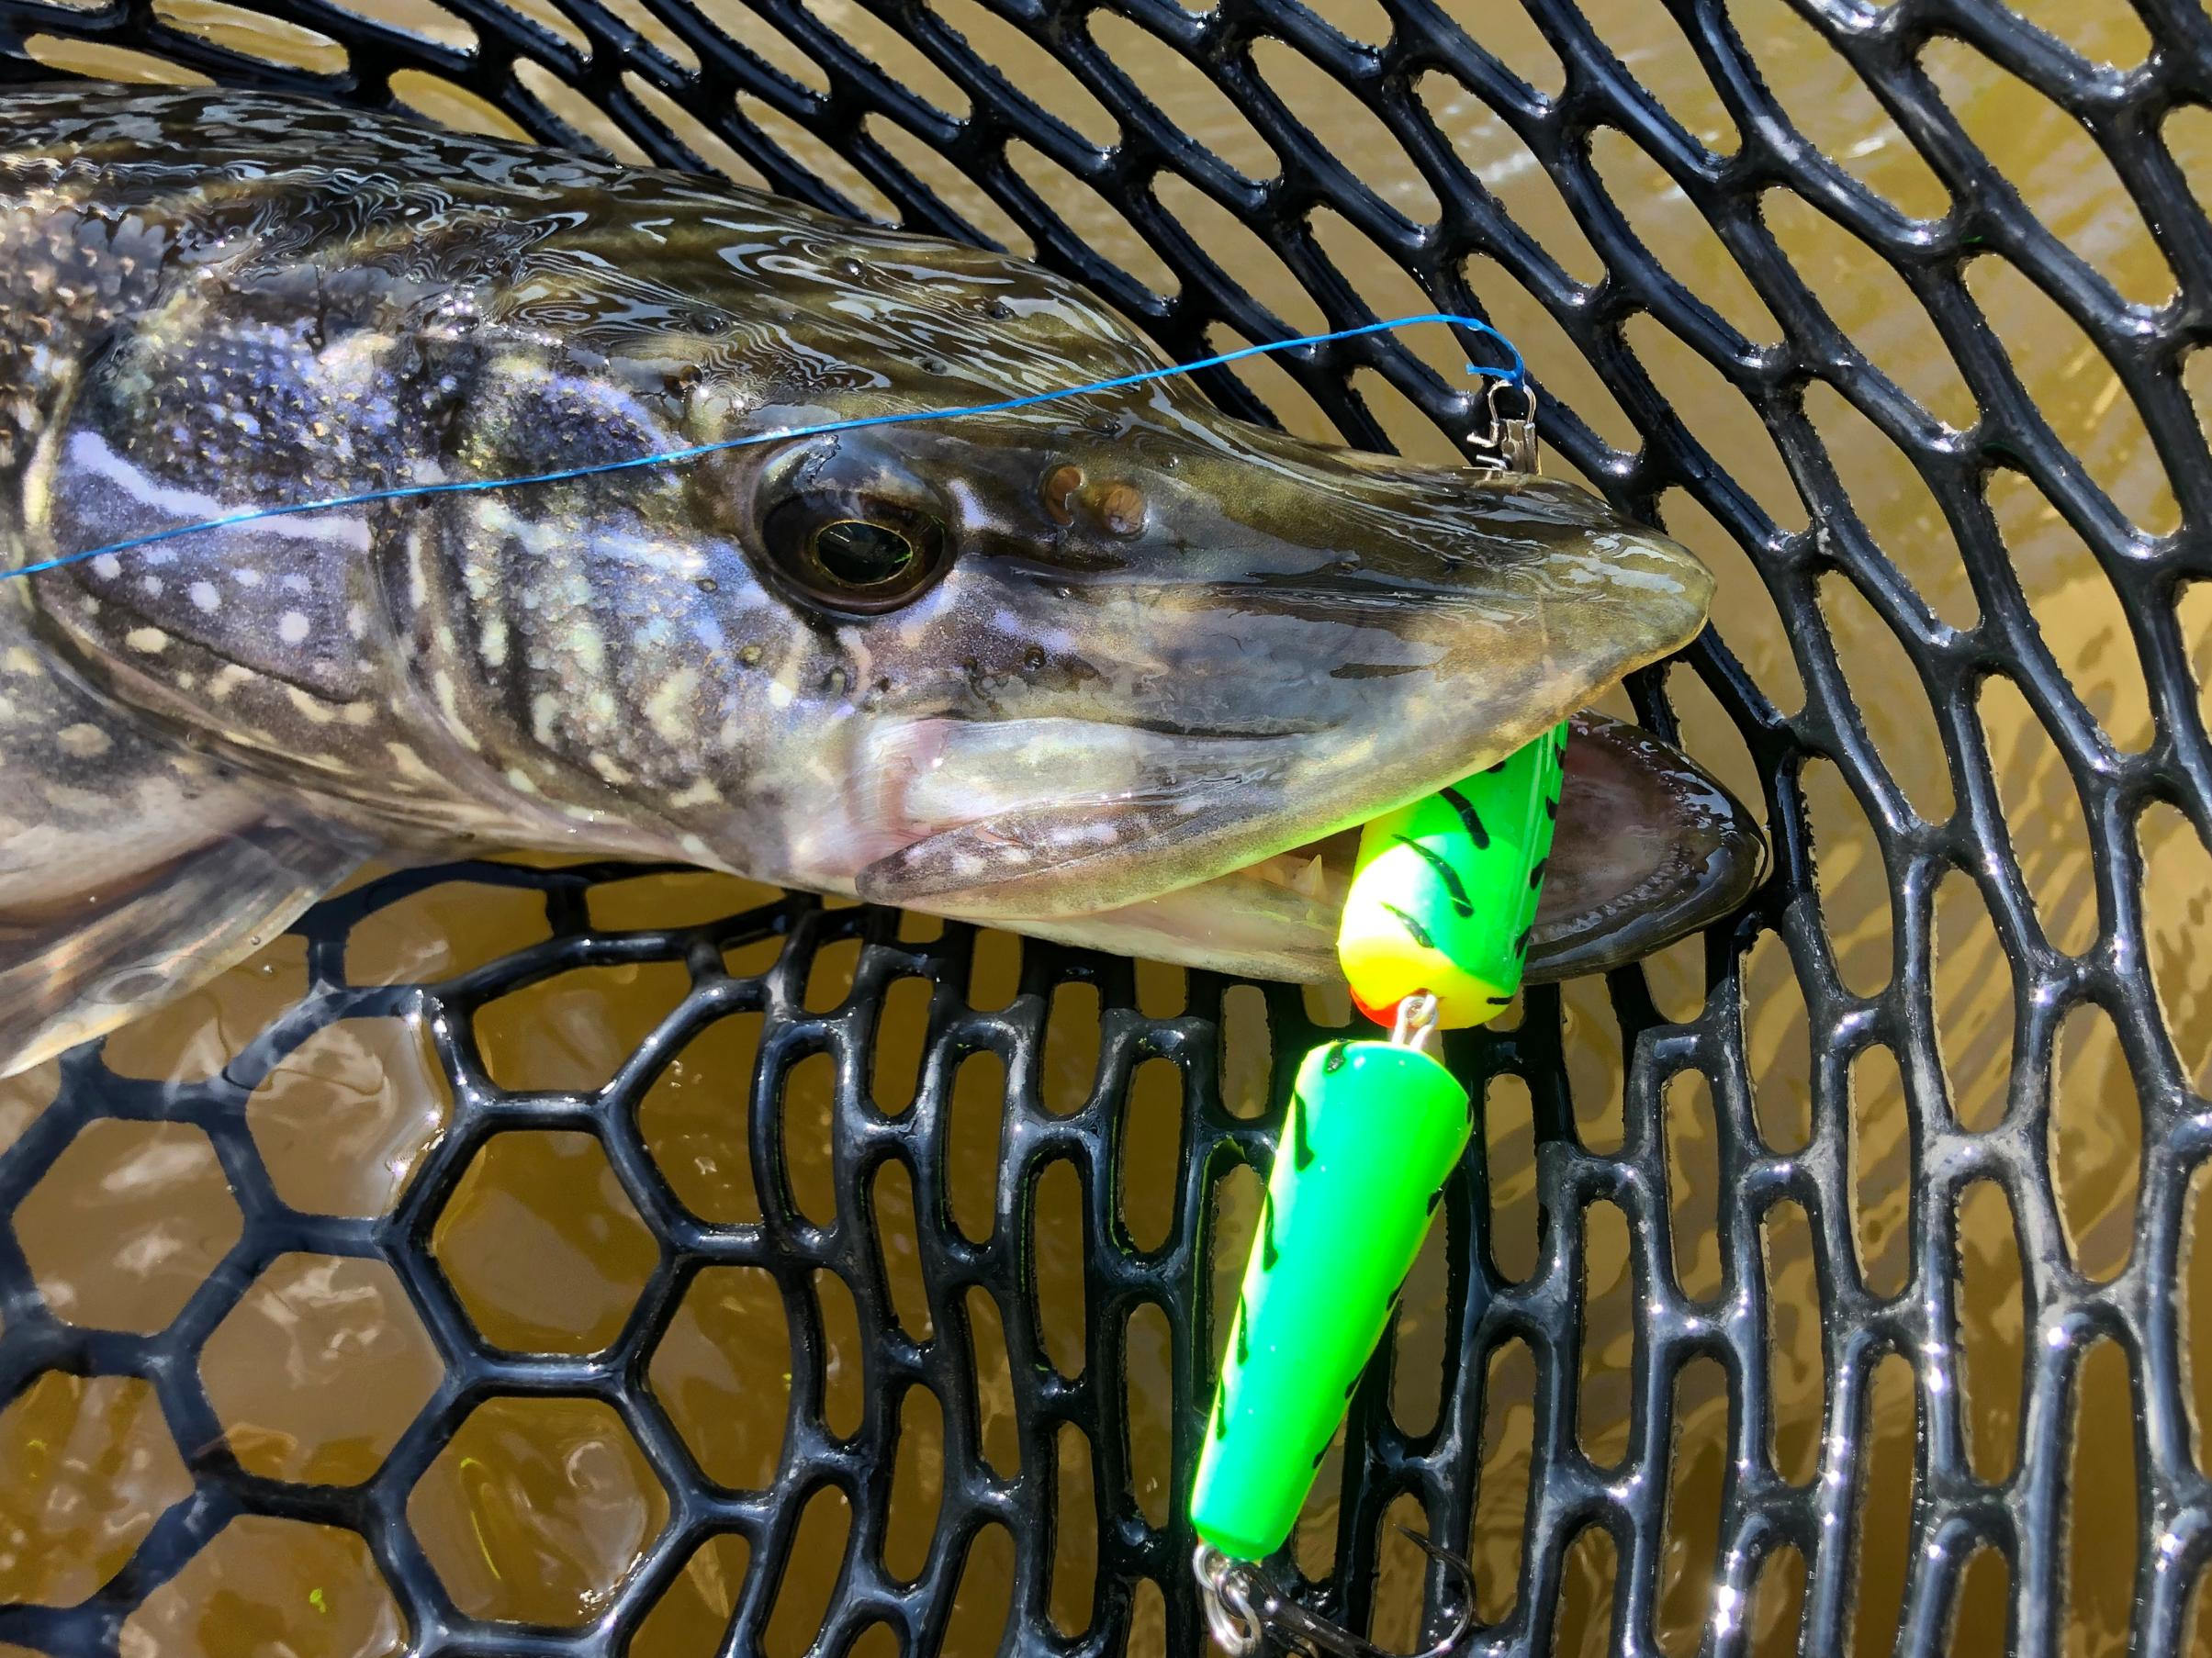 BWCA Crushed lure pics -- let's see em! Boundary Waters Fishing Forum